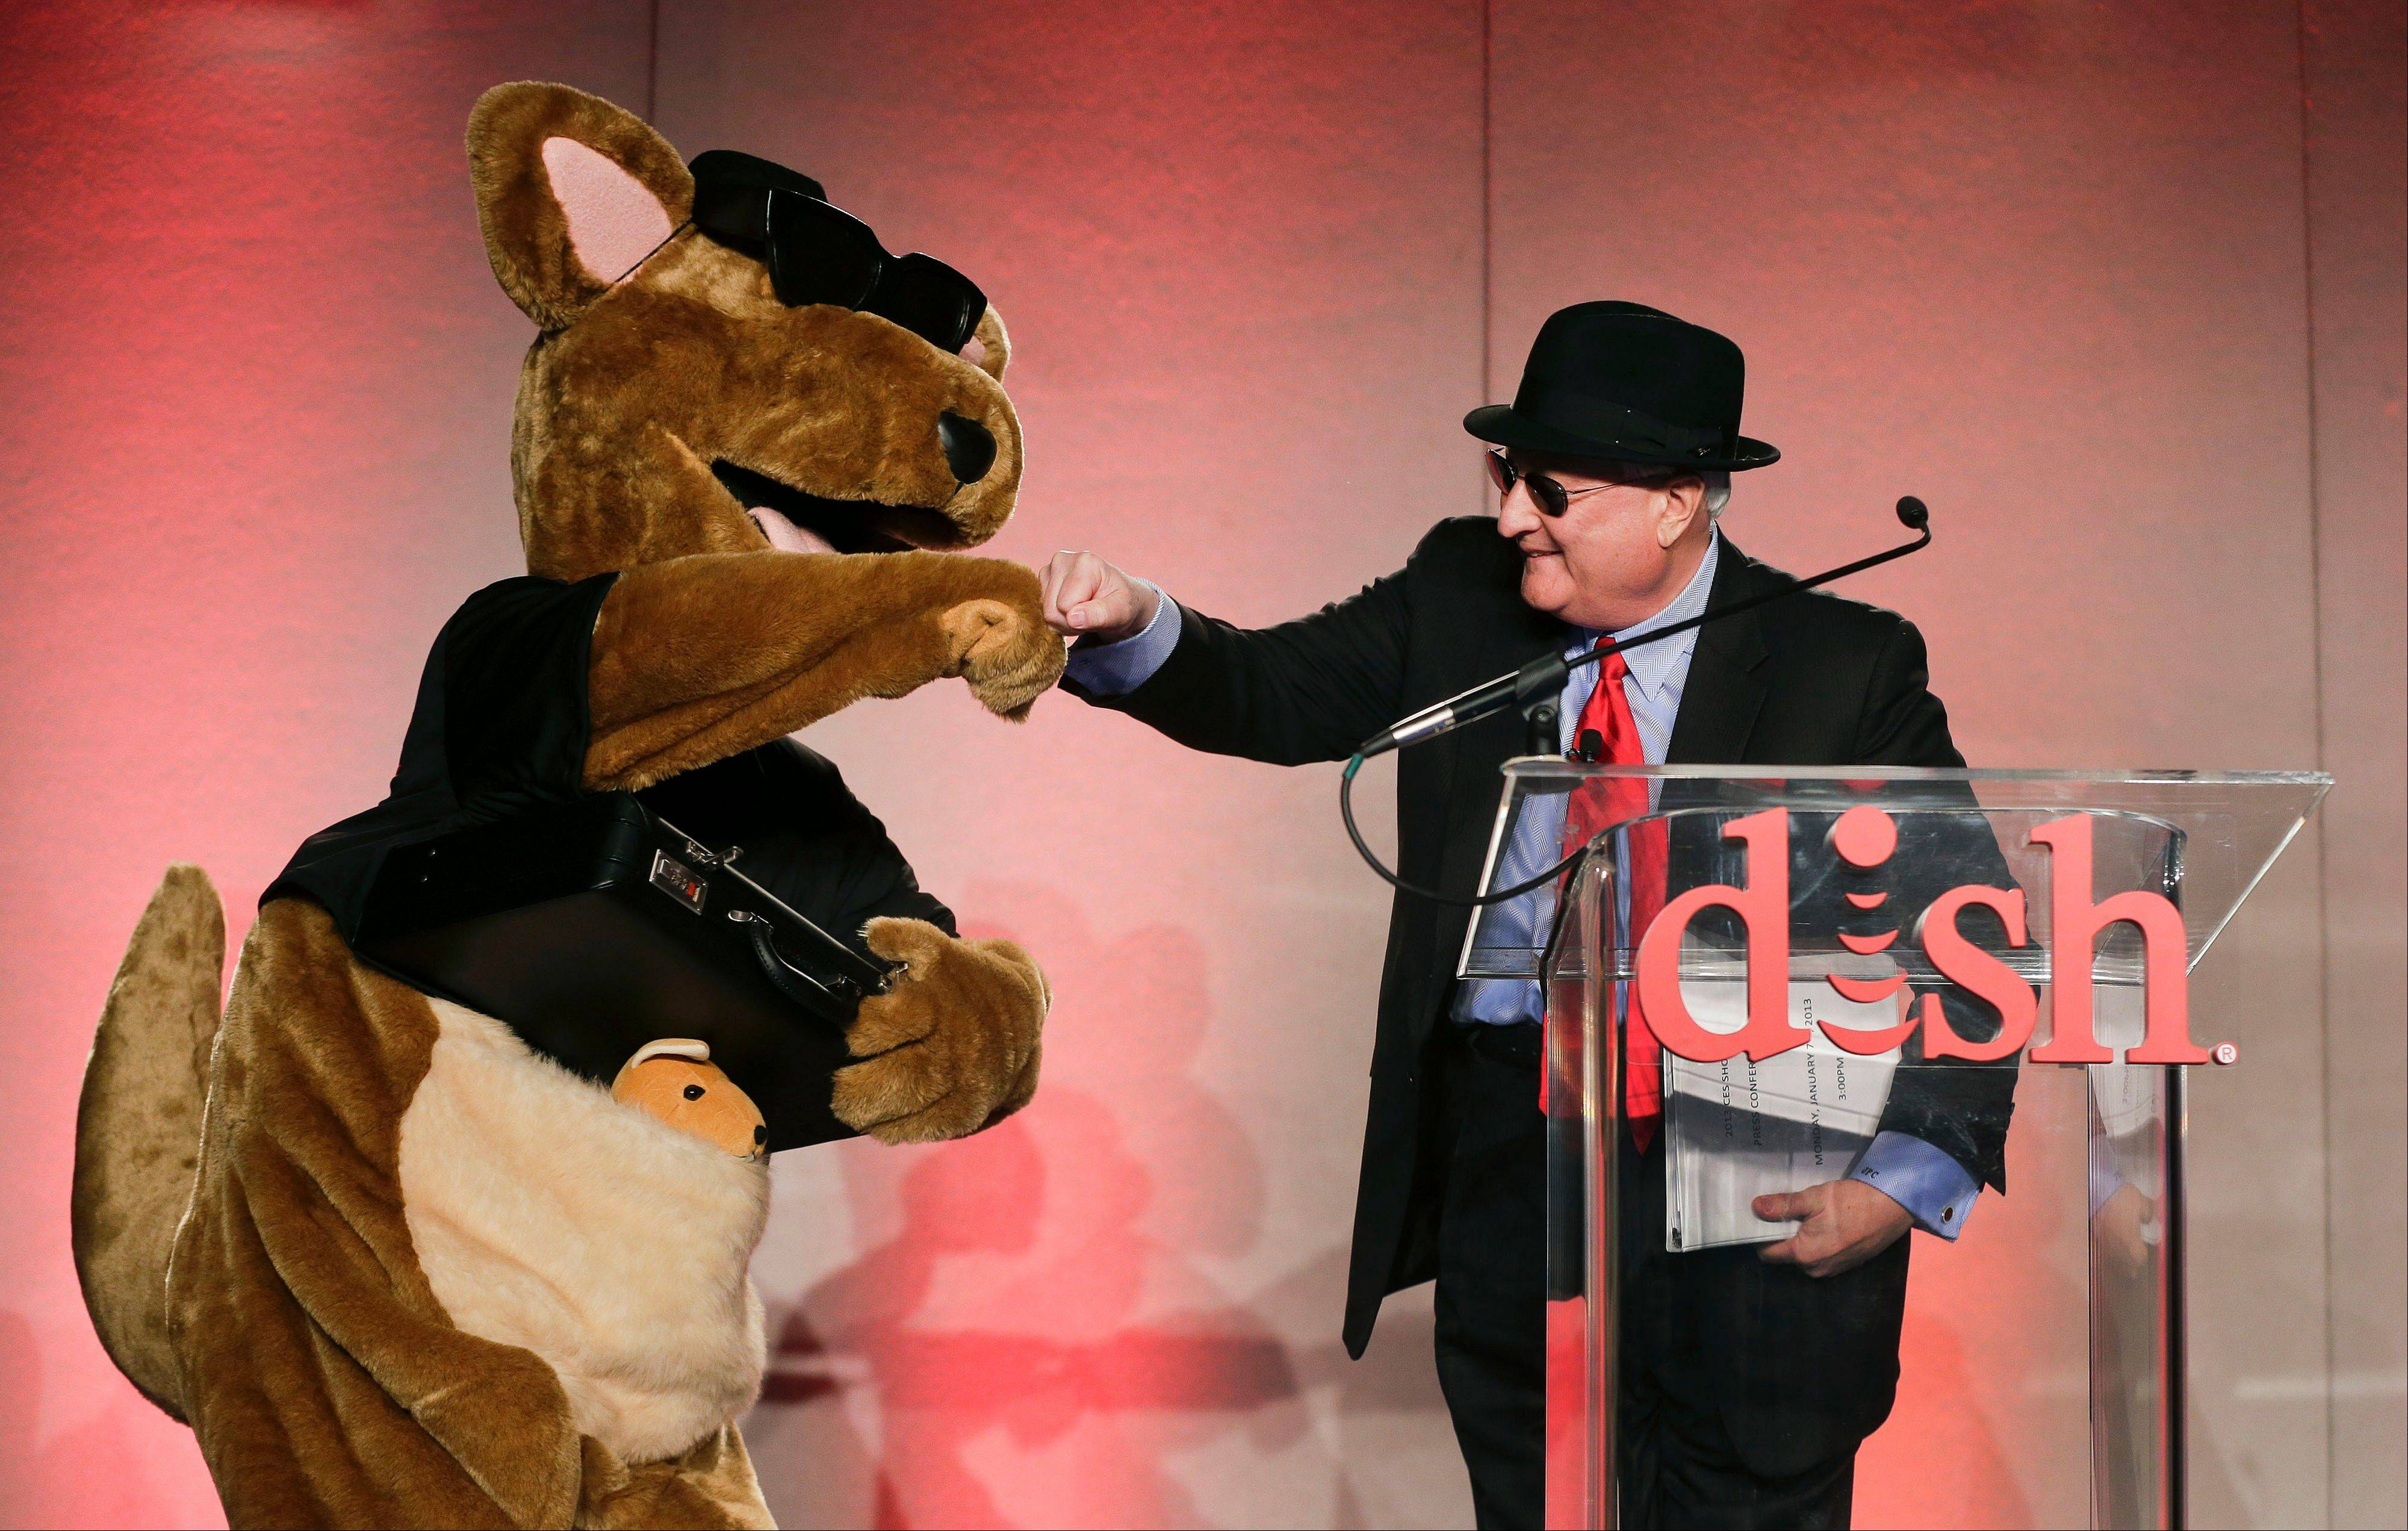 DISH Network president and CEO Joe Clayton greets the company mascot, Hopper, at the start of a news conference during press day at the Consumer Electronics Show.